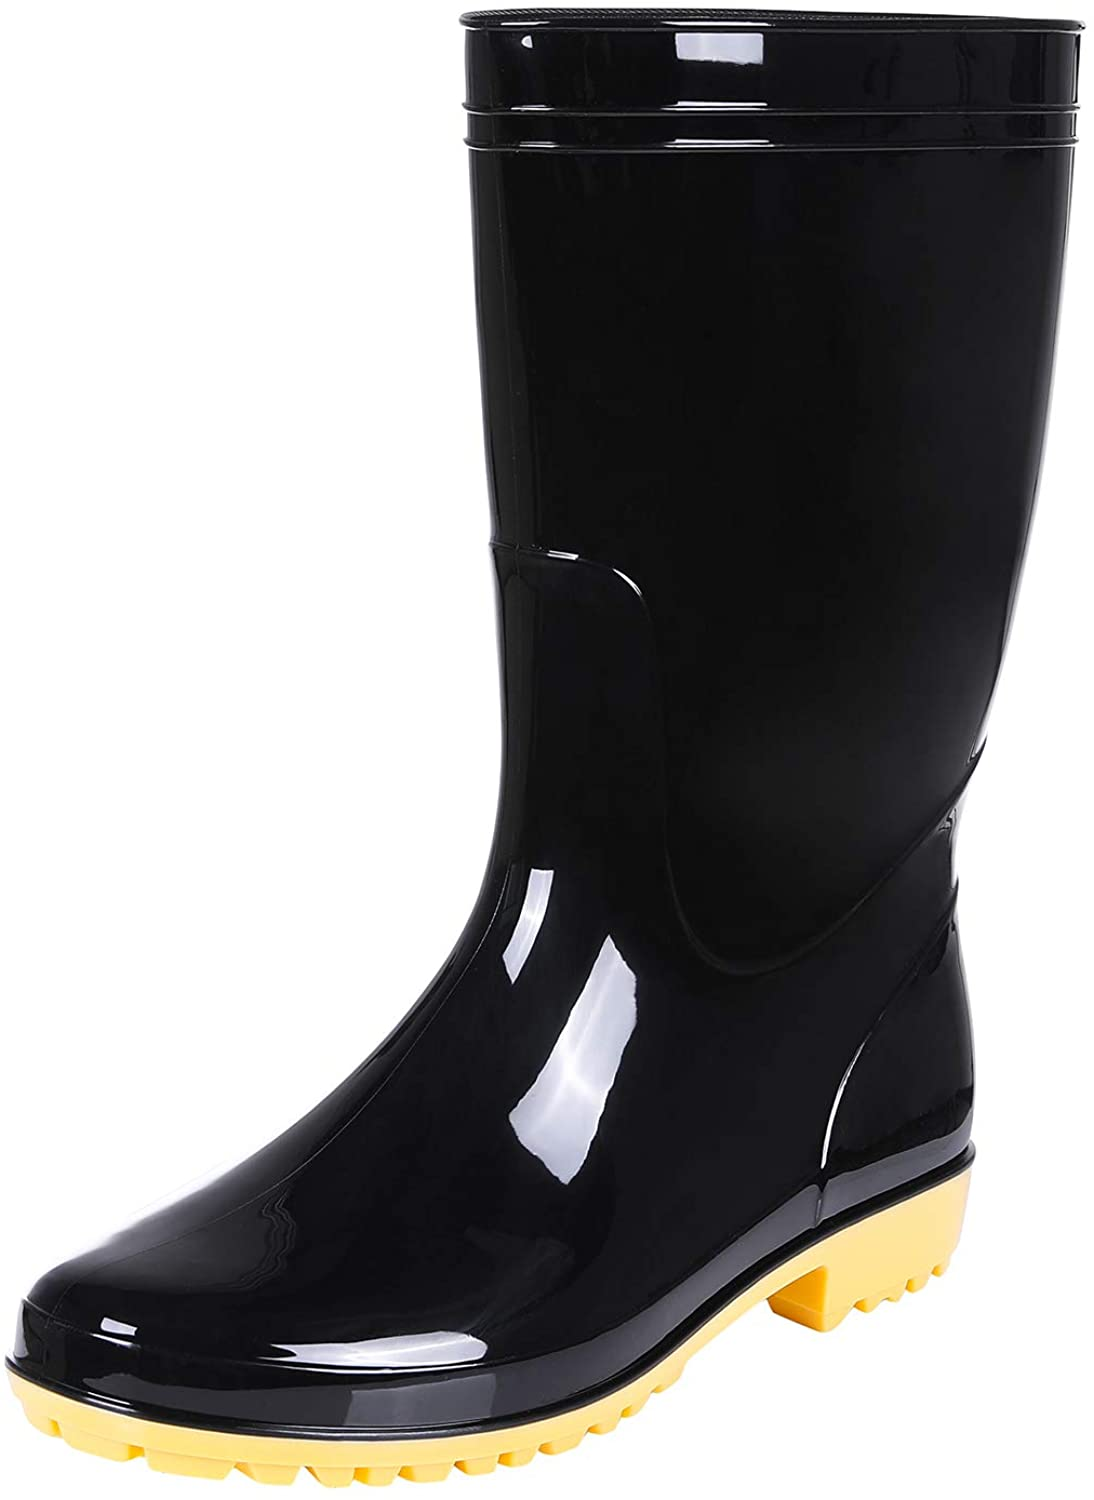 Comwarm Men's Mid-Calf Rain Boots Waterproof Anti-Slip Black PVC Adult Outdoor Work Rubber Boots